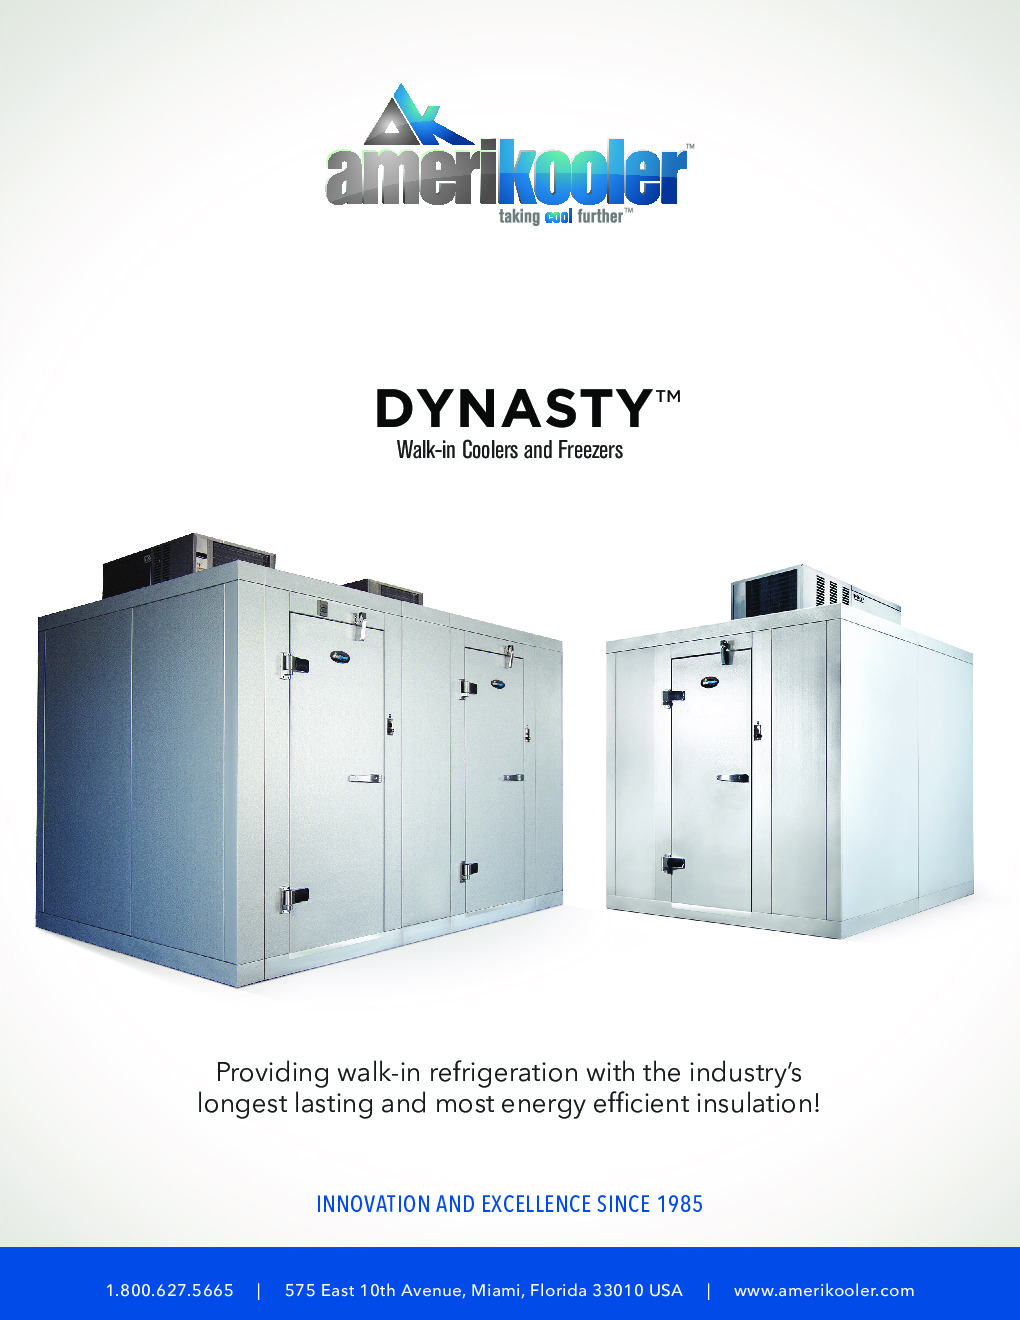 AmeriKooler DW061277N-6/6-SC 6' X 12' Walk-In Cooler, 6' L Cooler without Floor and 6' L Freezer, Self Contained